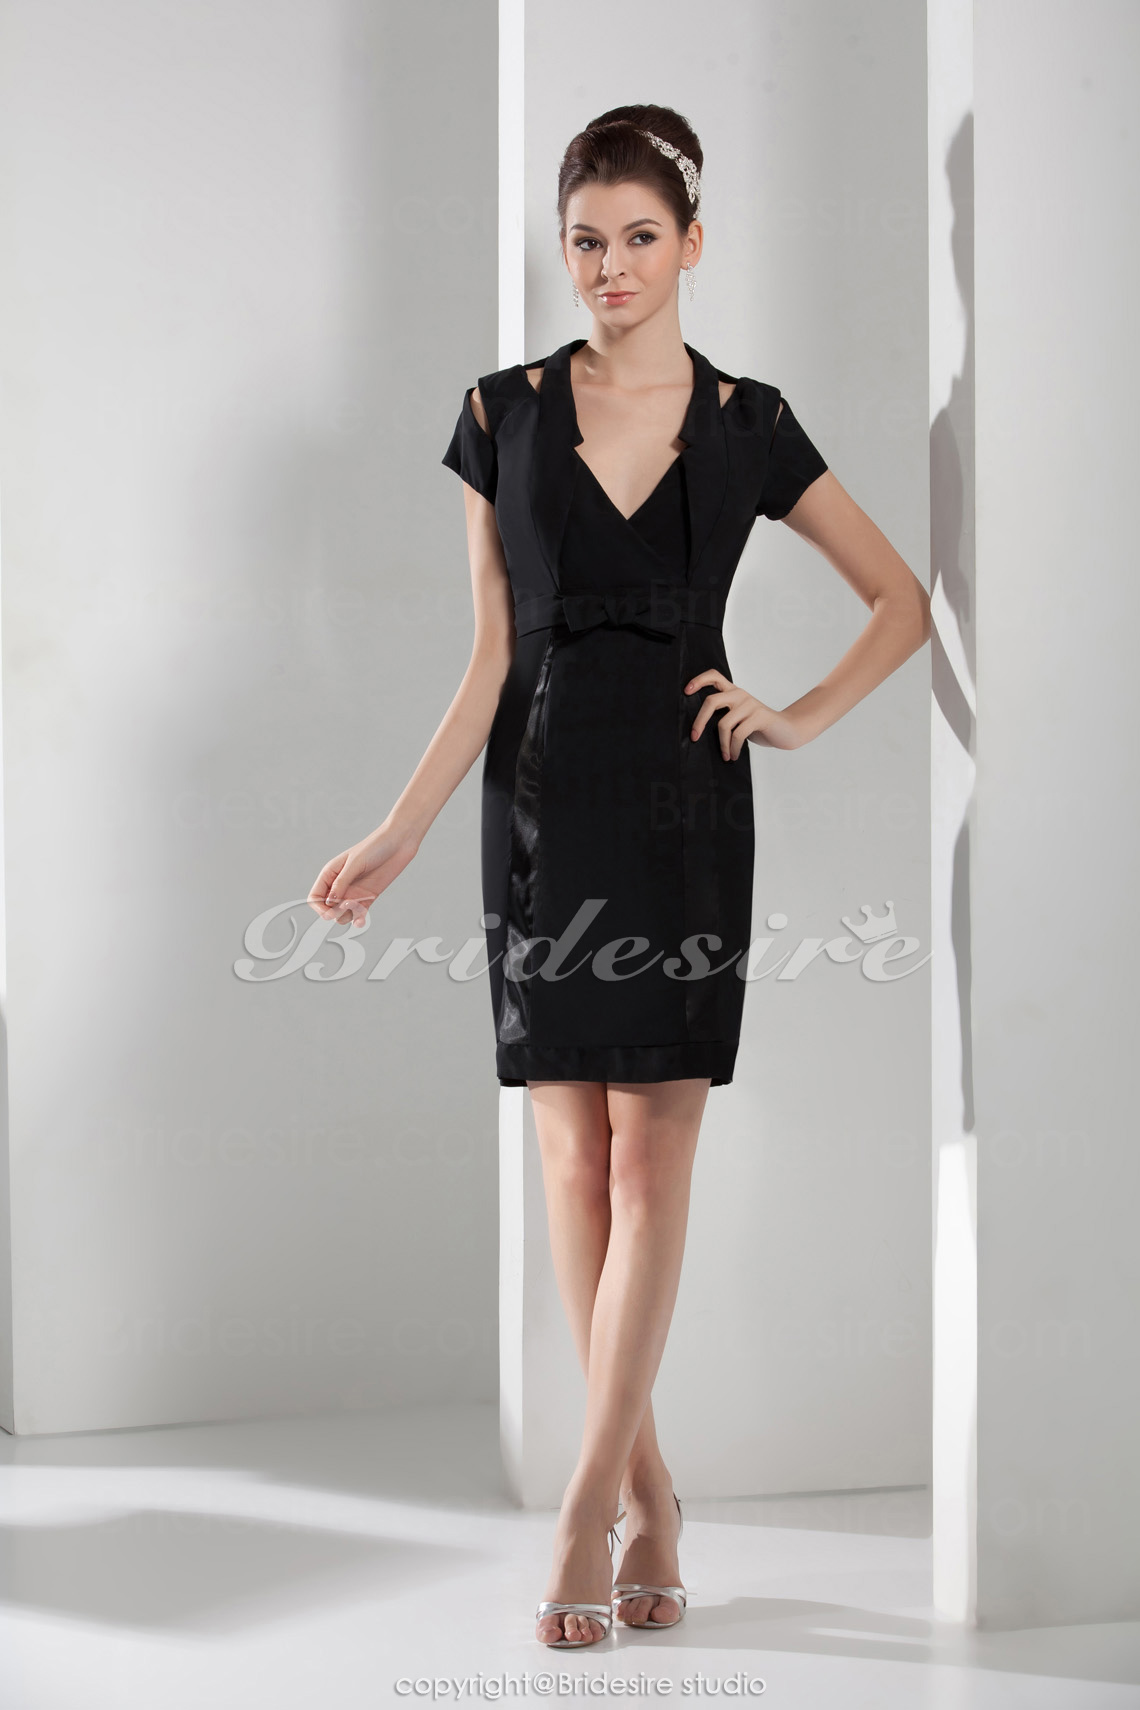 Sheath/Column V-neck Knee-length Short Sleeve Satin Dress